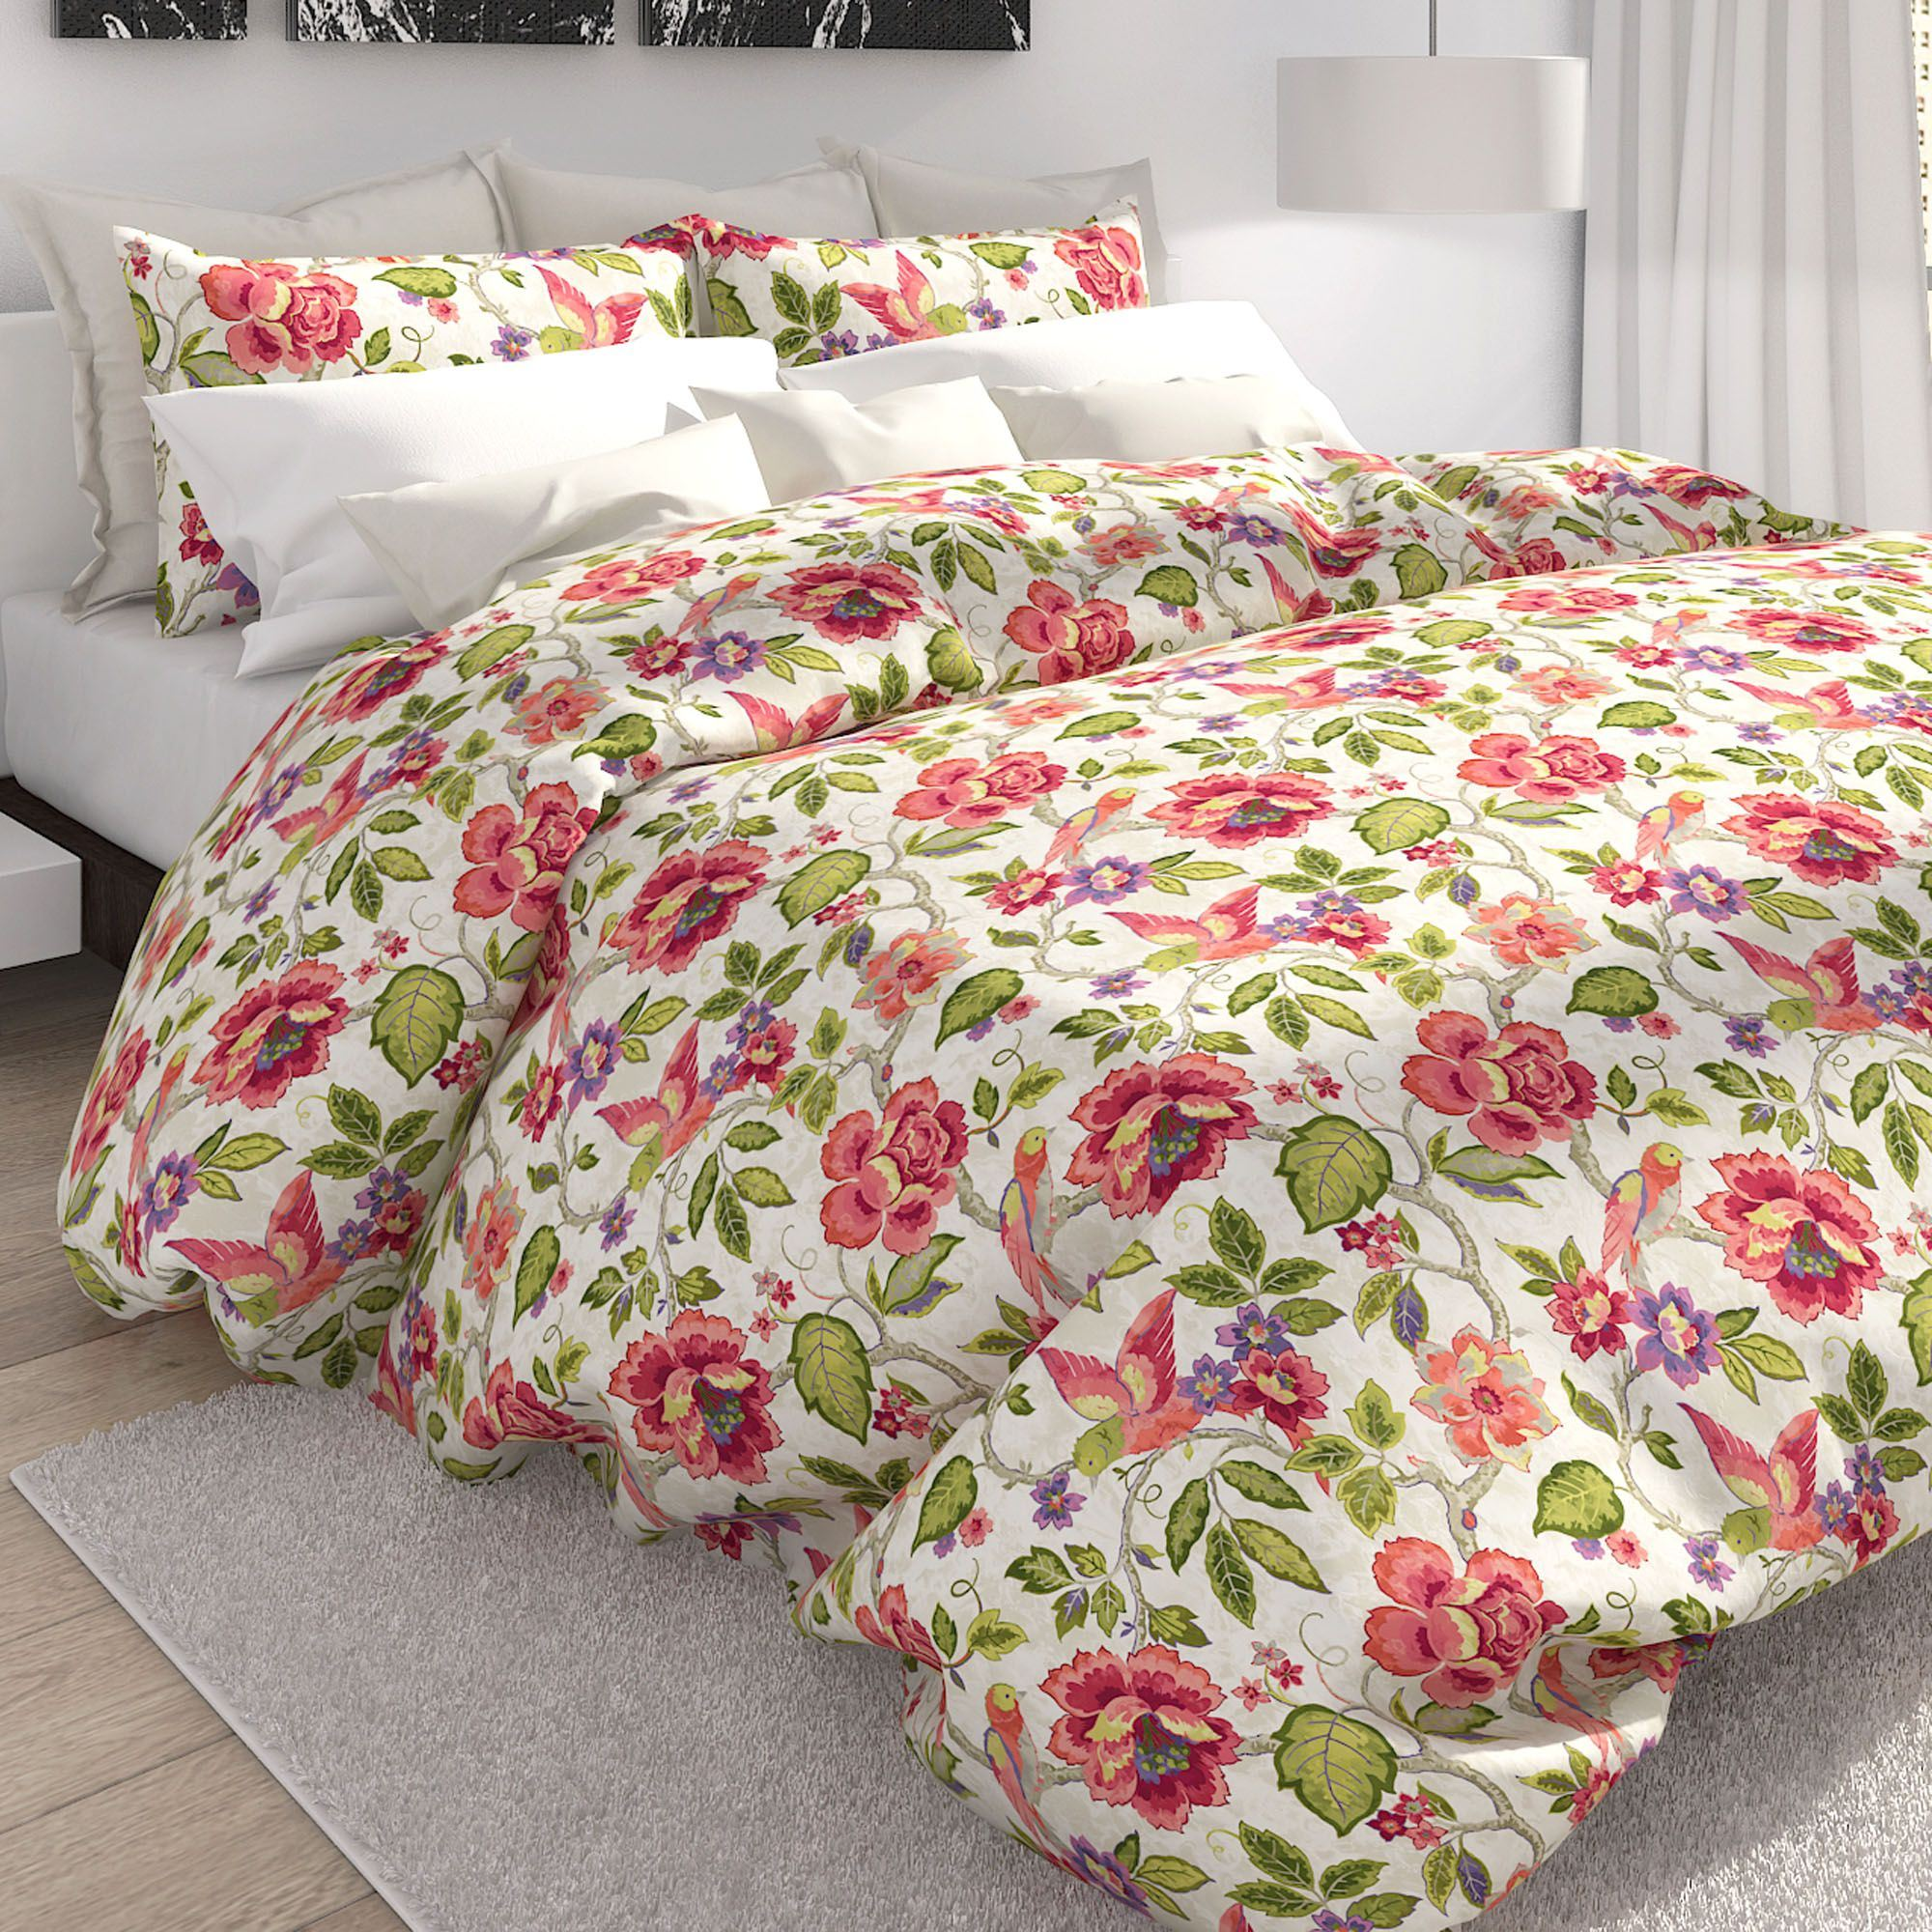 King Duvet Tess Off White Tropical Floral King Duvet Cover Set By Colorfly